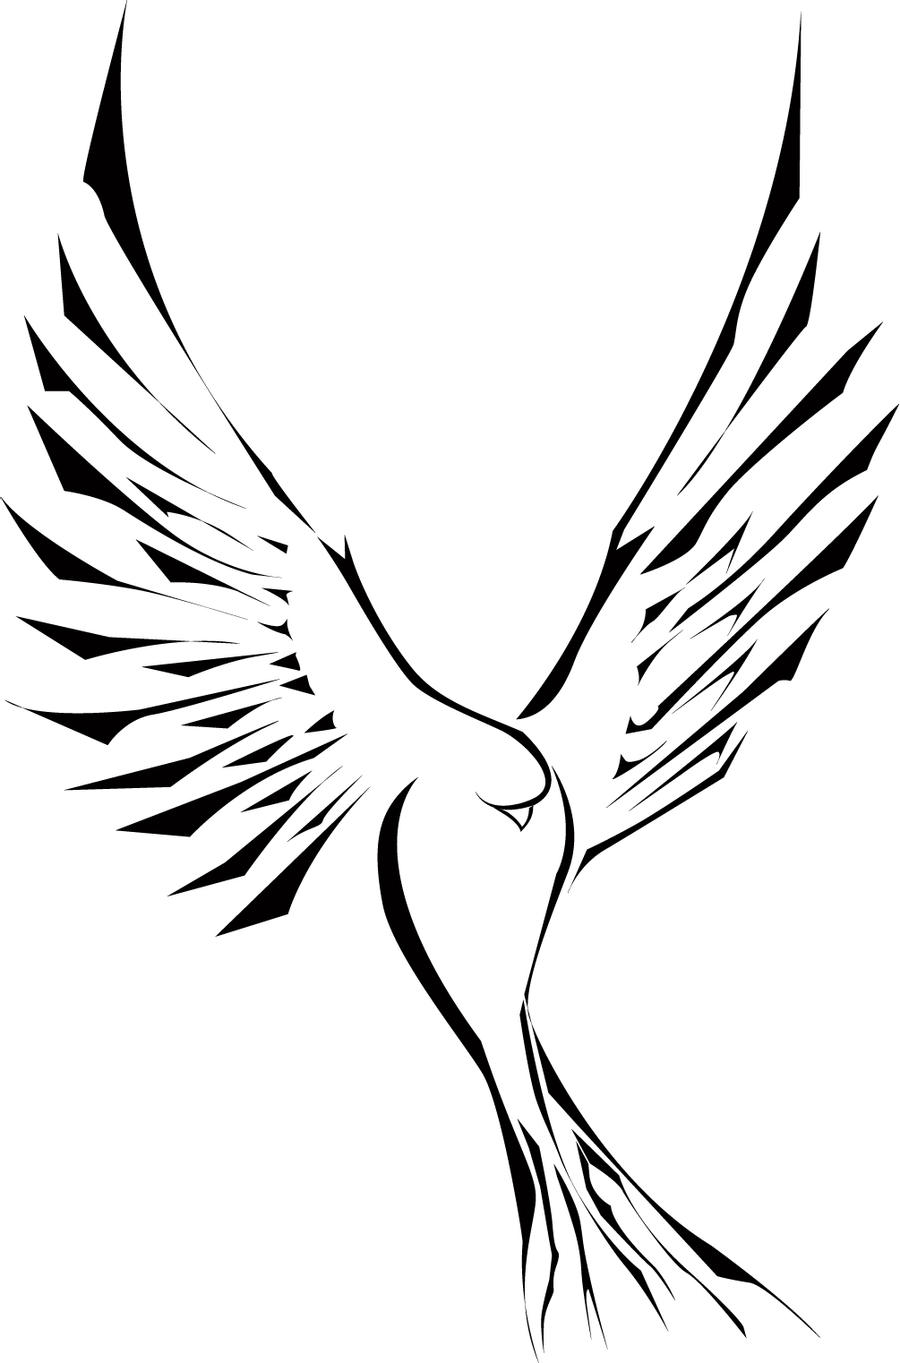 dove drawing dove free stock photo illustration of a flying dove dove drawing